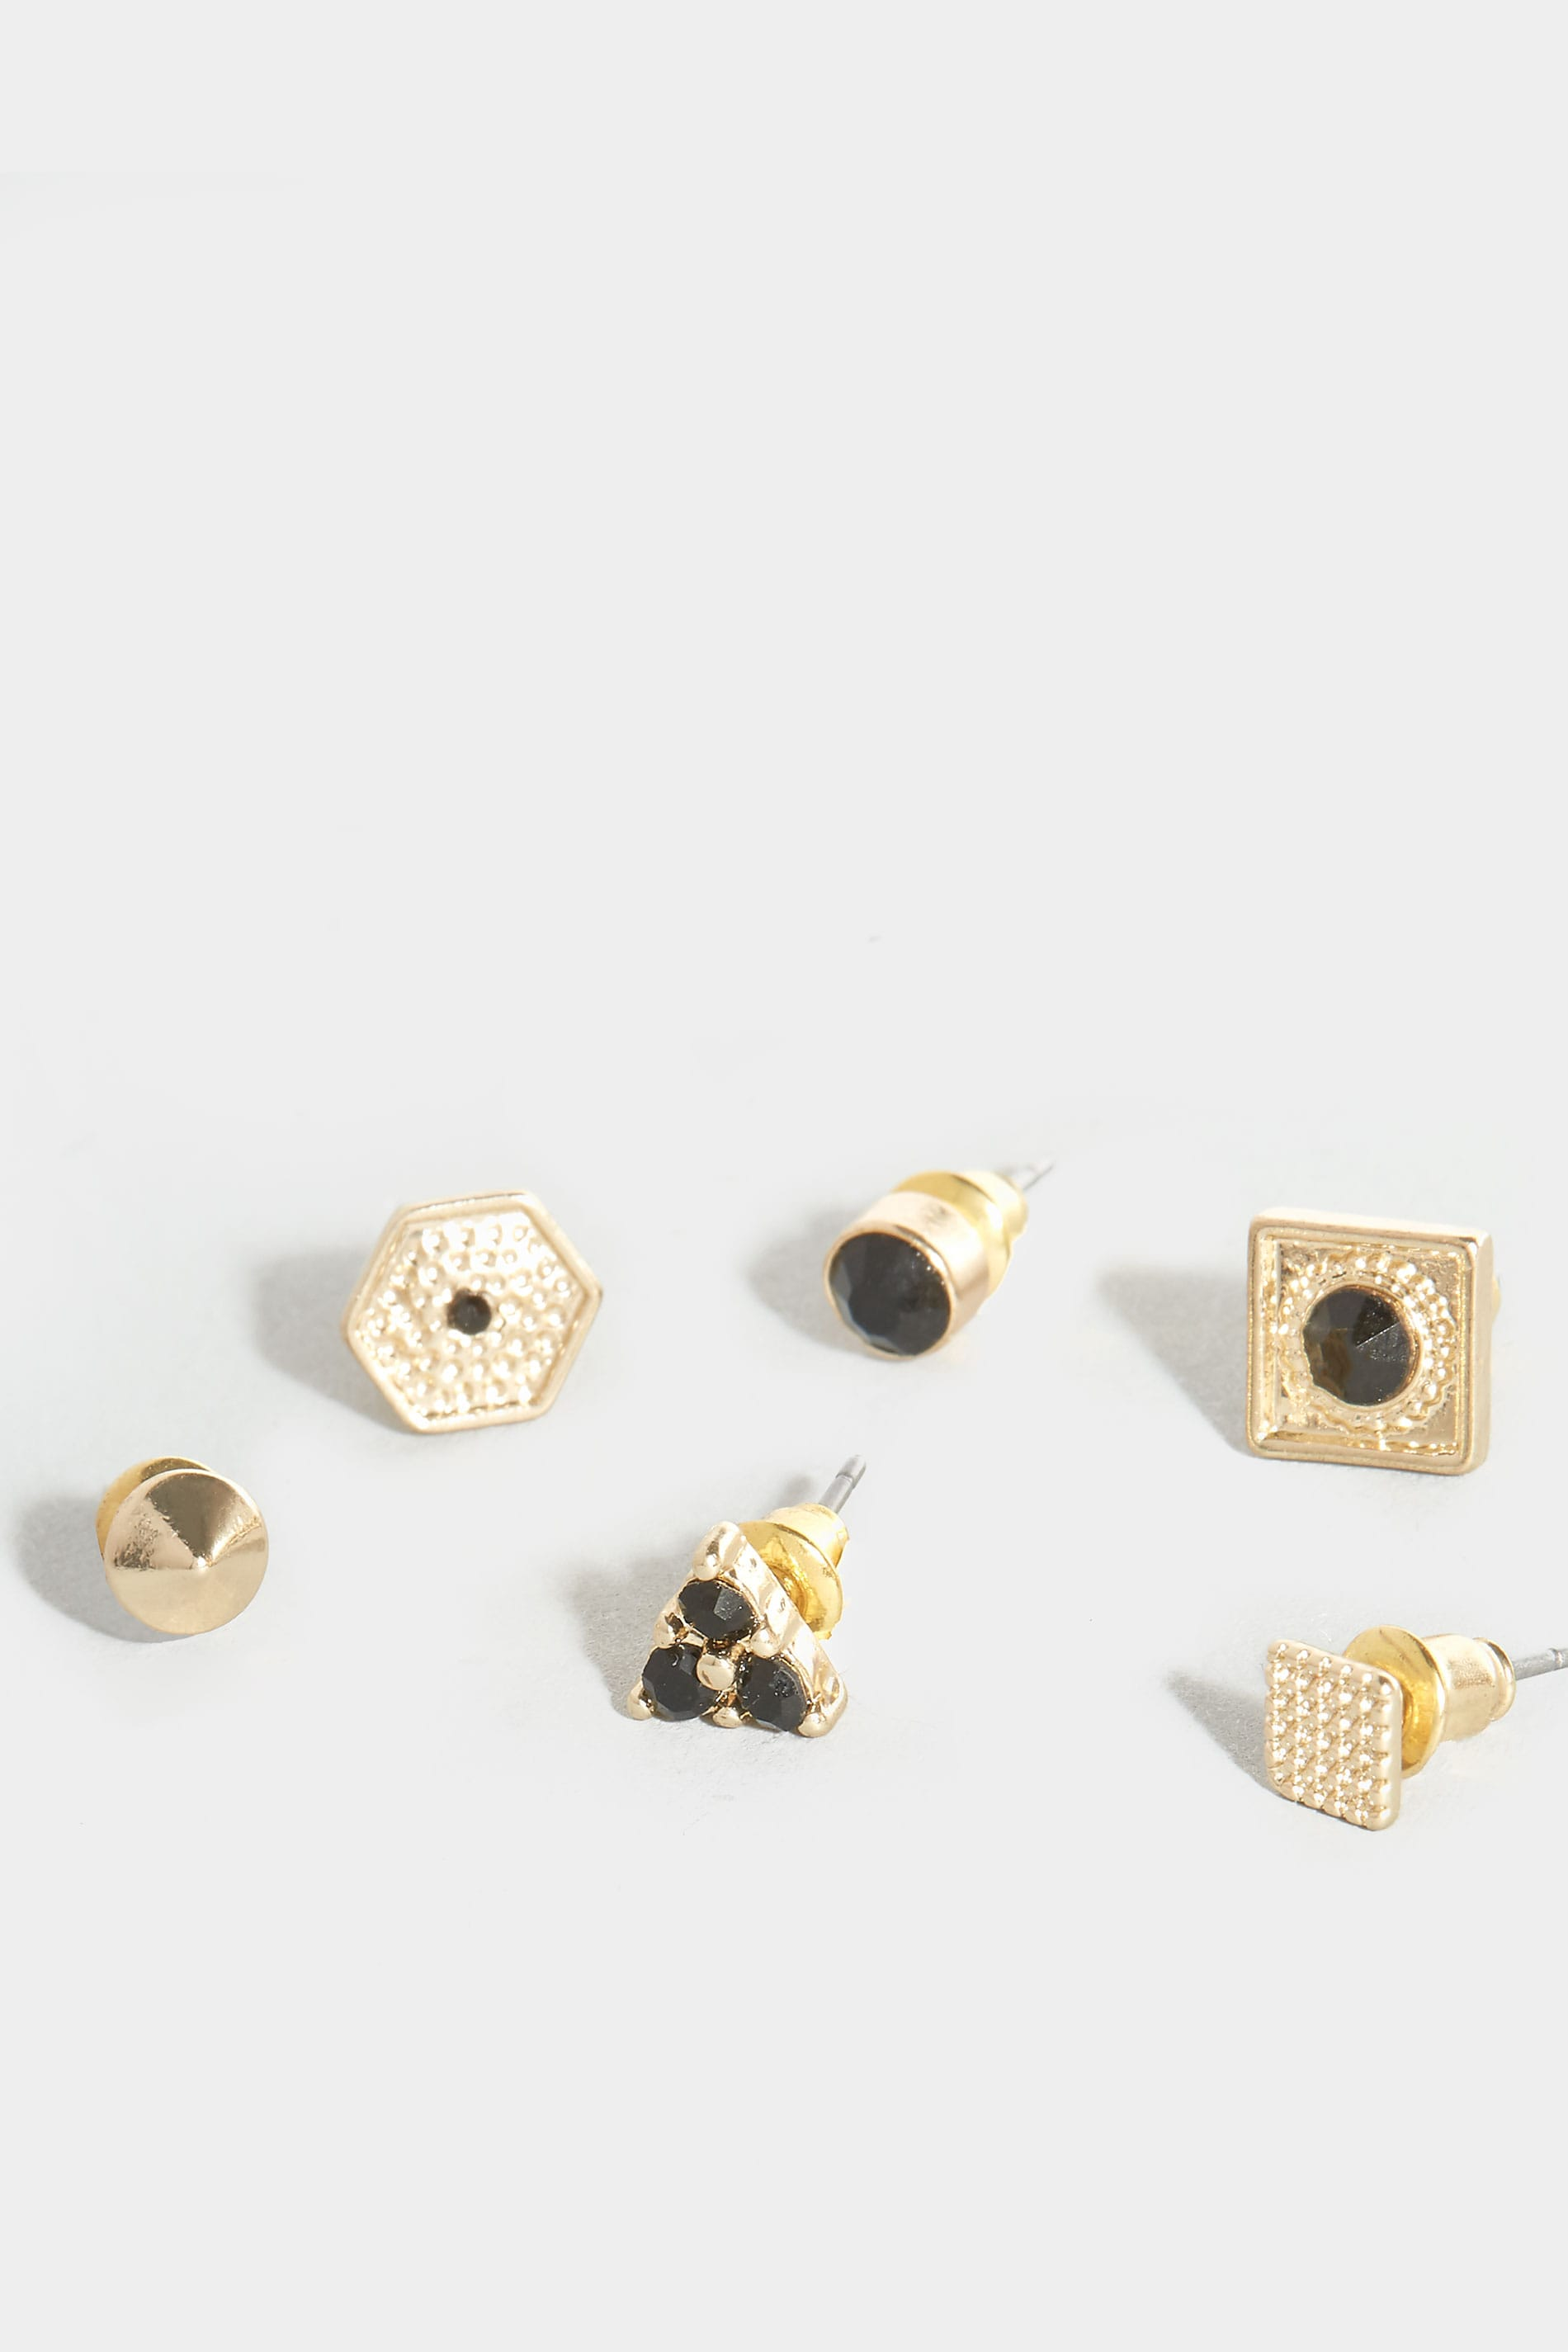 6 pack gold black assorted stud earrings. Black Bedroom Furniture Sets. Home Design Ideas